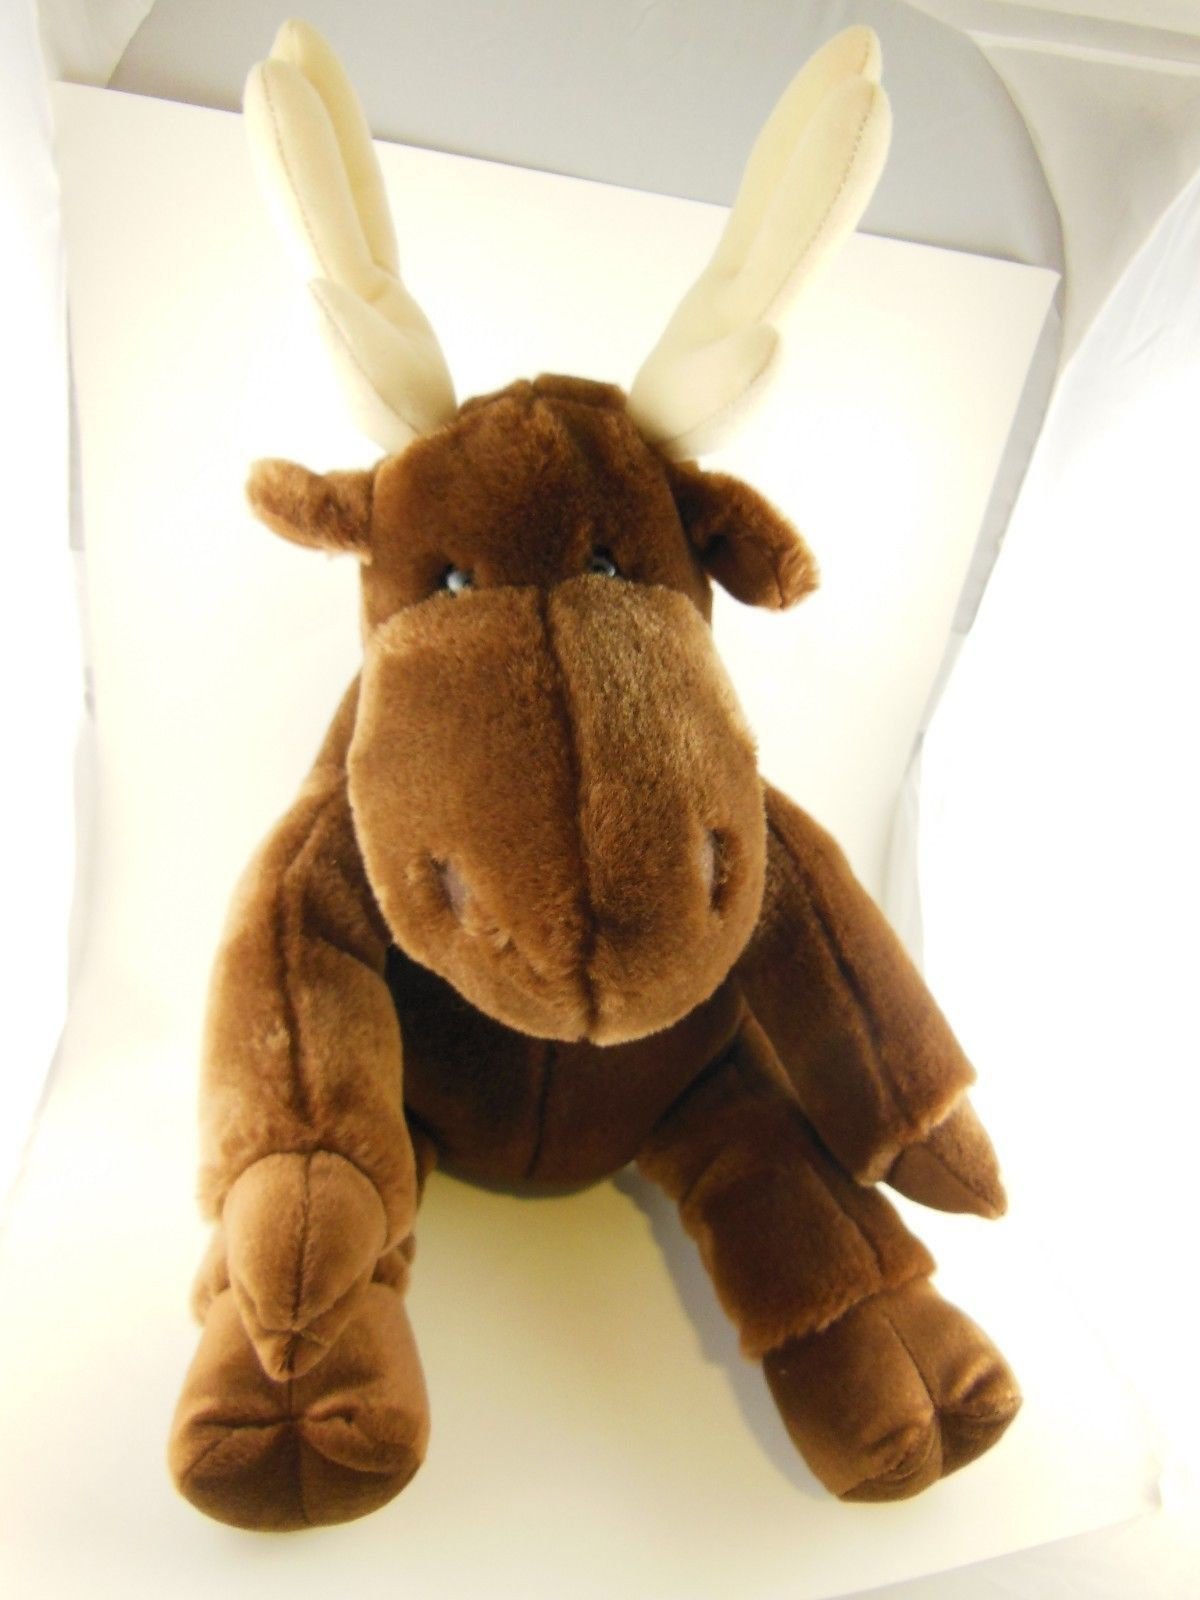 13 Moose Plush Kohl S Cares For Kids From If You Give A